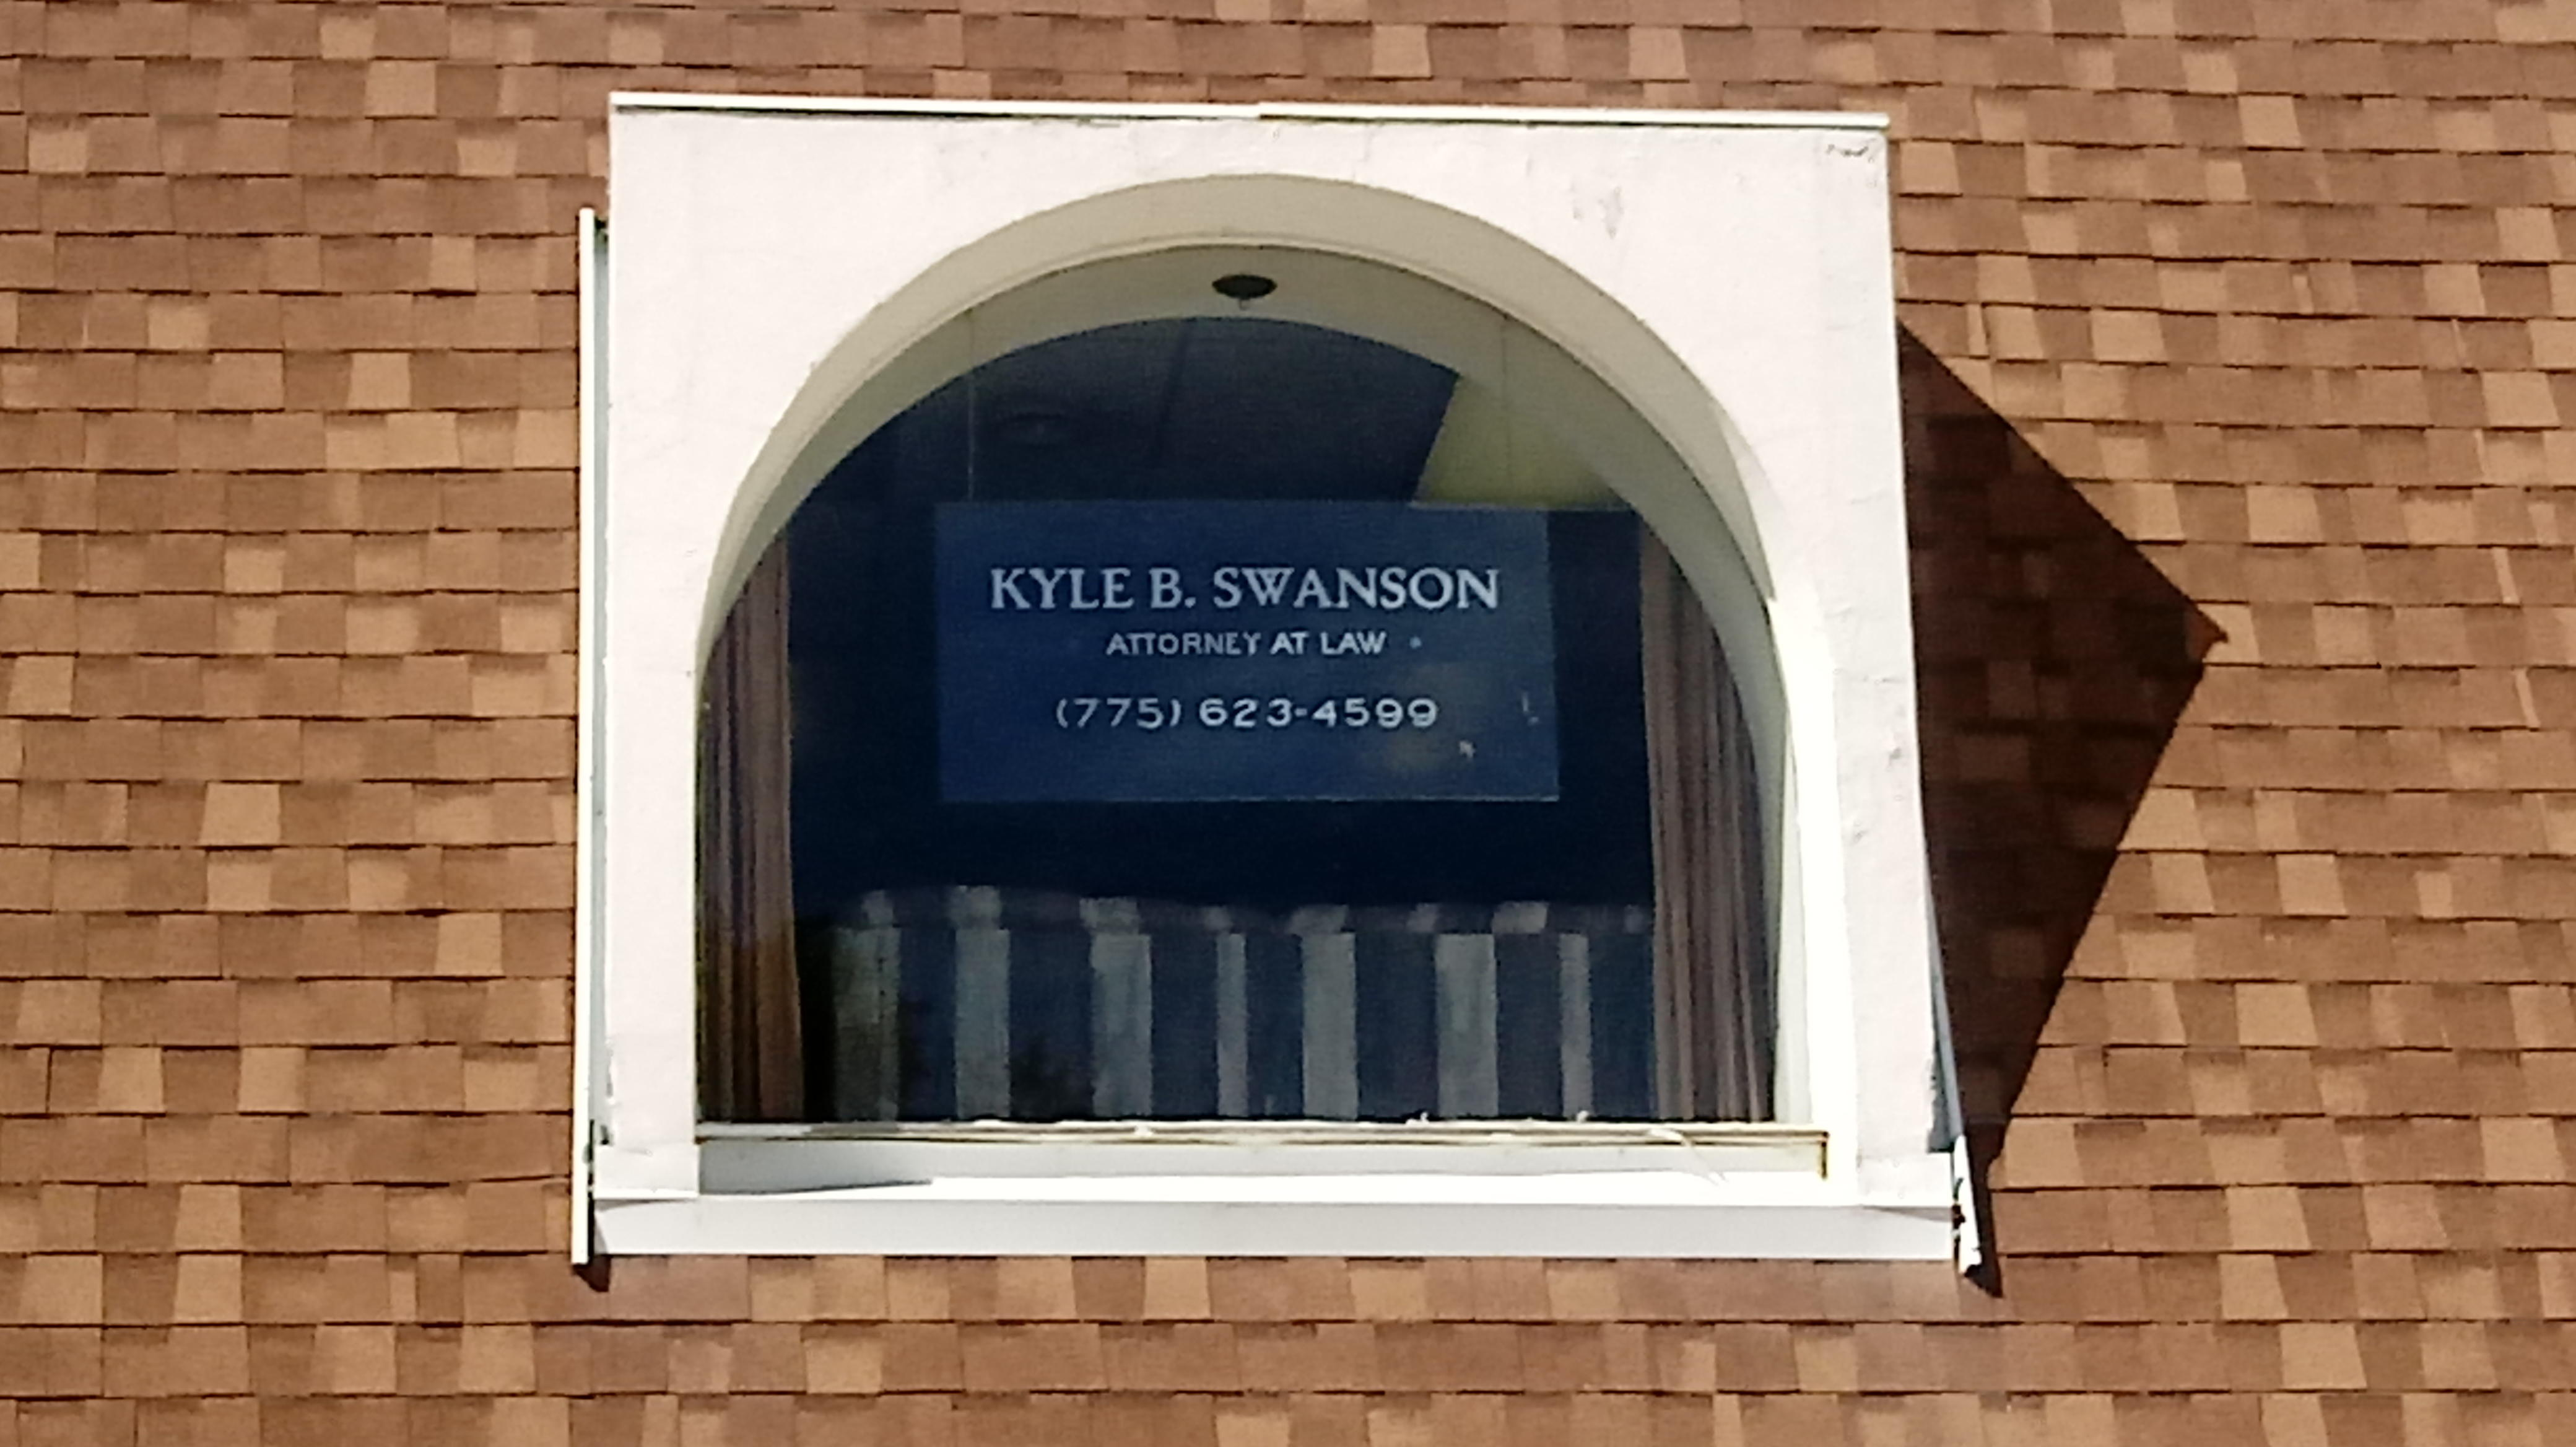 The Law Office of Kyle B Swanson